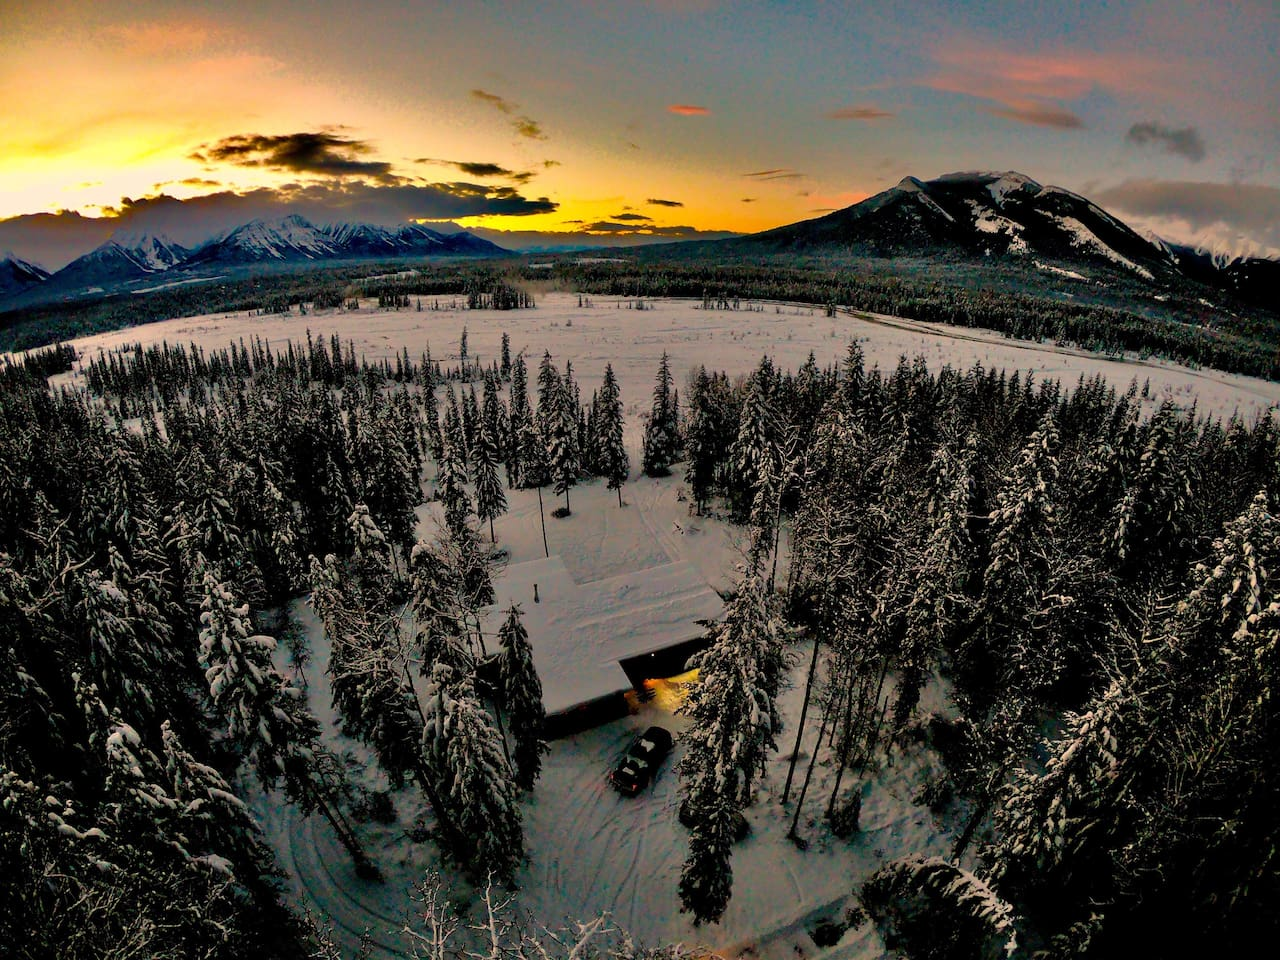 Drone shot of the house with the frozen river for miles and amazing views